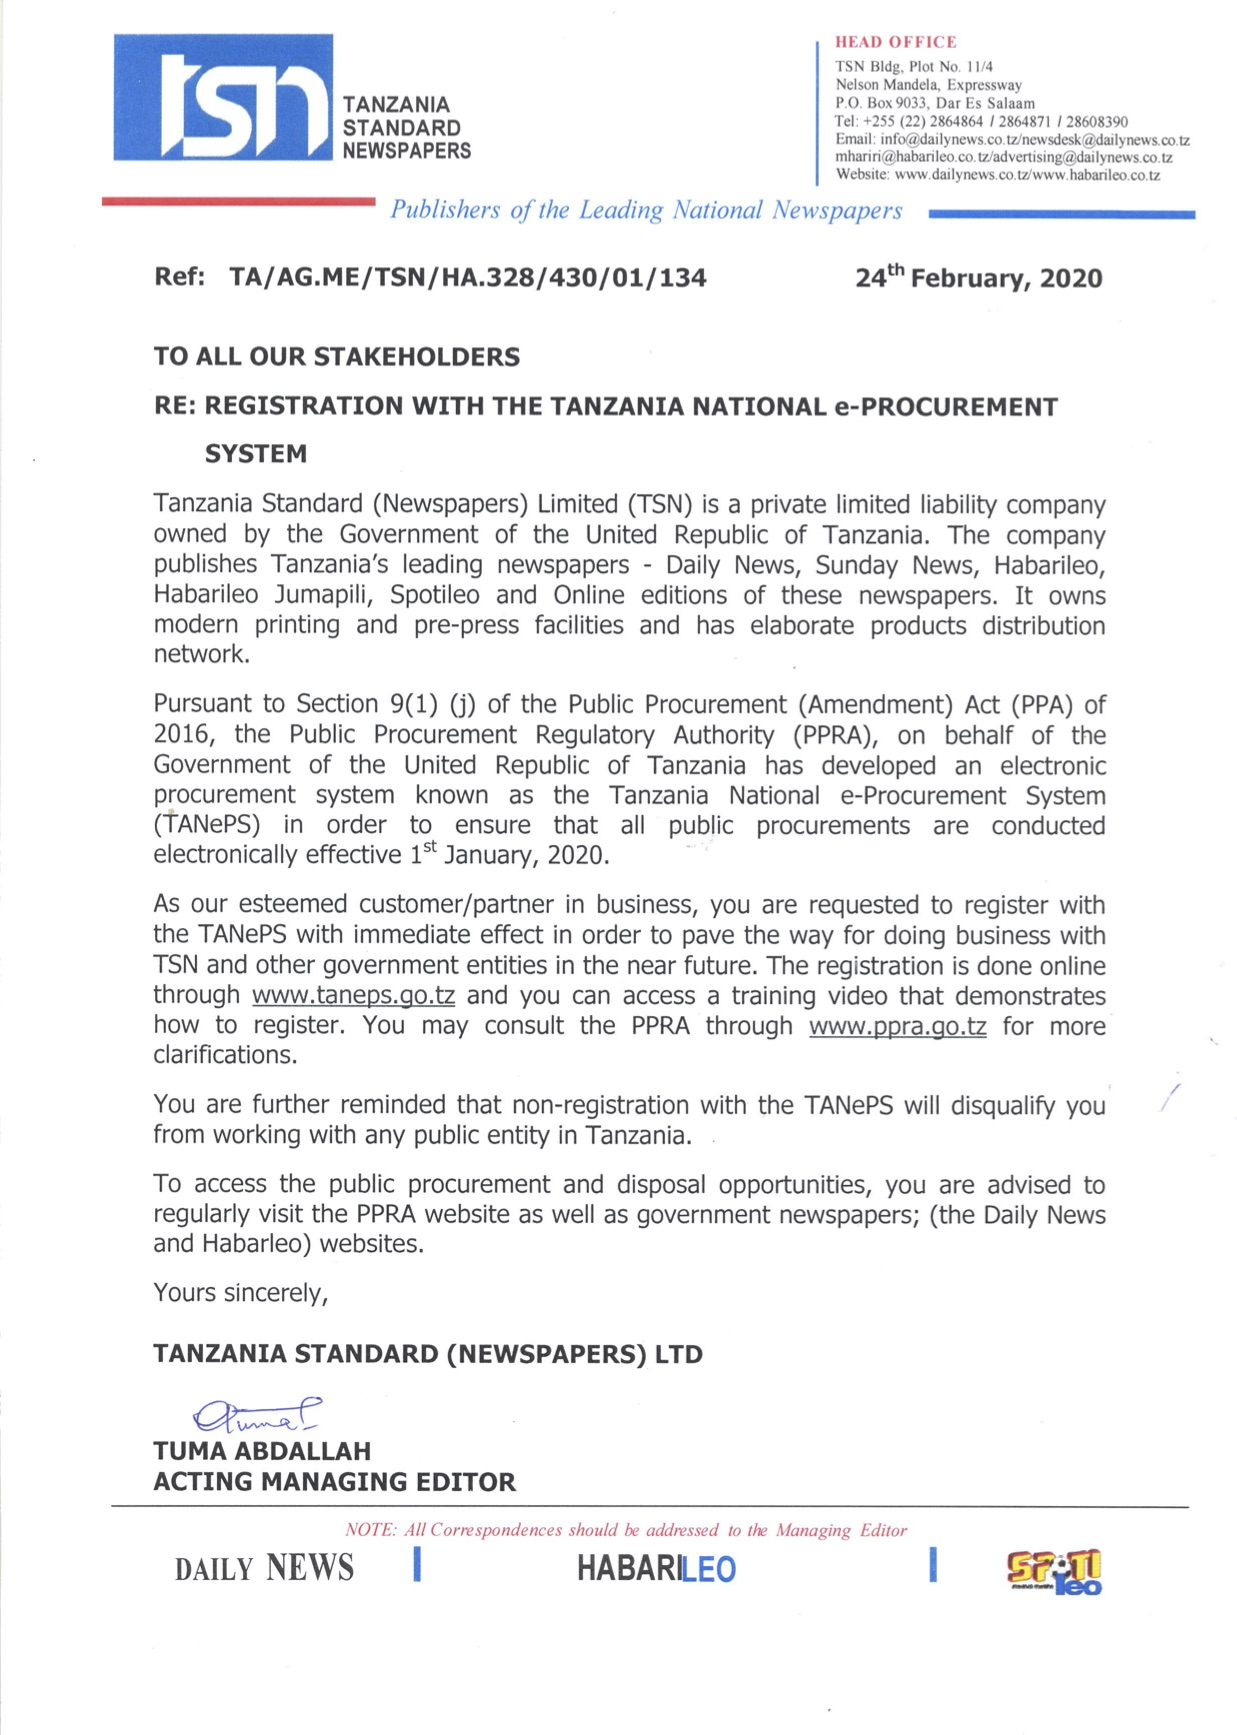 TSN URGES HER STAKEHOLDERS TO REGISTER WITH THE TANZANIA NATIONAL e-PROCUREMENT SYSTEM